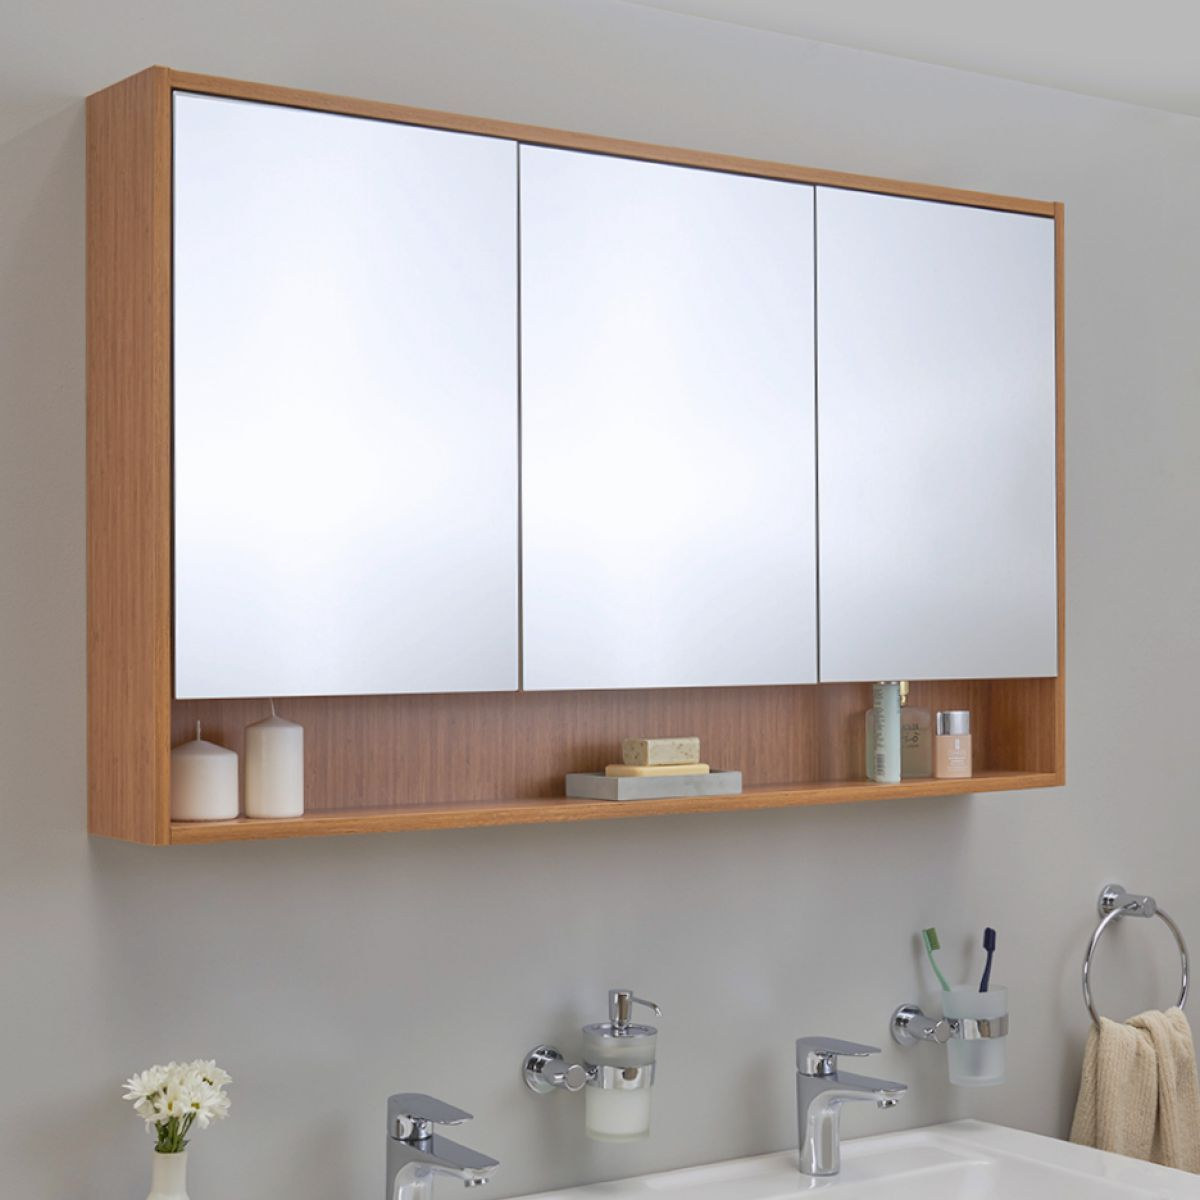 Vitra Integra Extra Large 120cm Mirror Cabinet In 2021 Mirror Cabinets Large Medicine Cabinet Cabinet